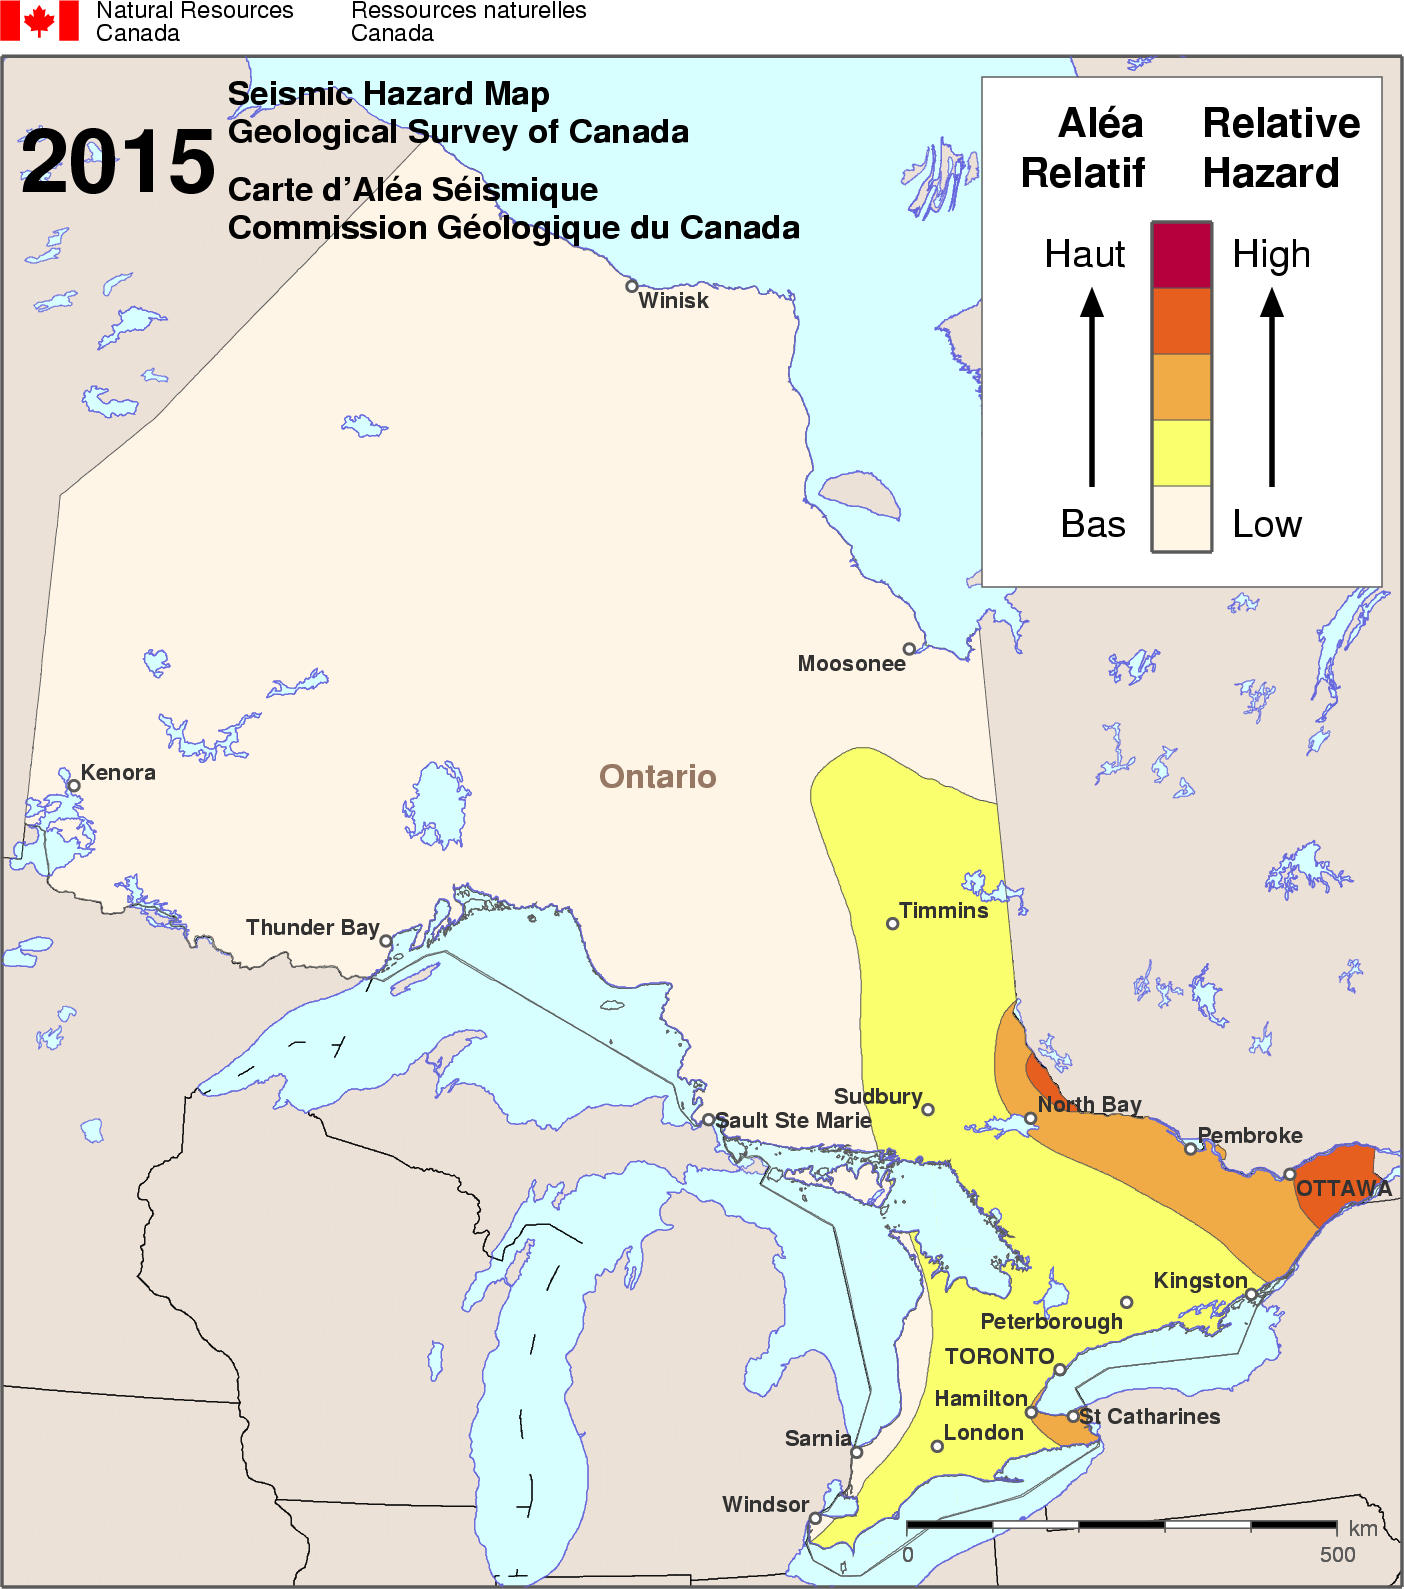 Fault Lines Canada Map Simplified seismic hazard map for Canada, the provinces and